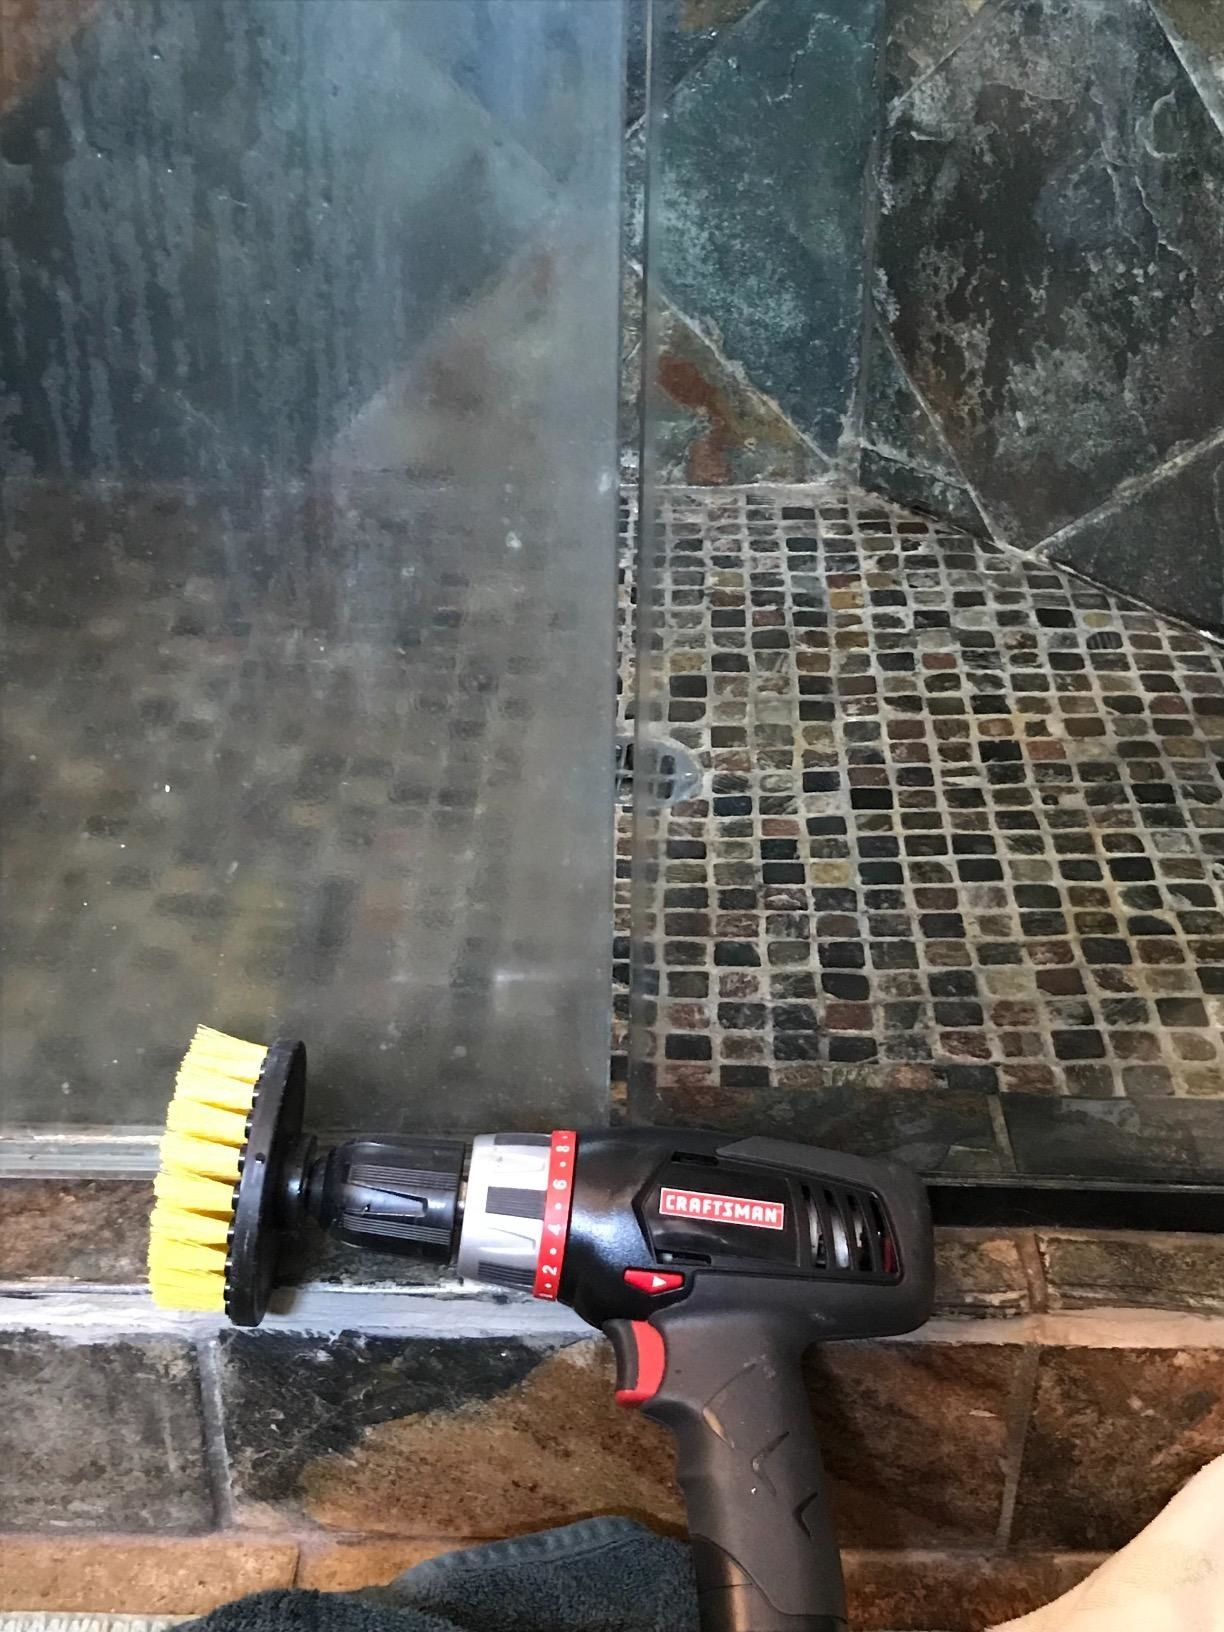 yellow brush attached to a drill in front of a glass shower wall that's half cloudy and half clear